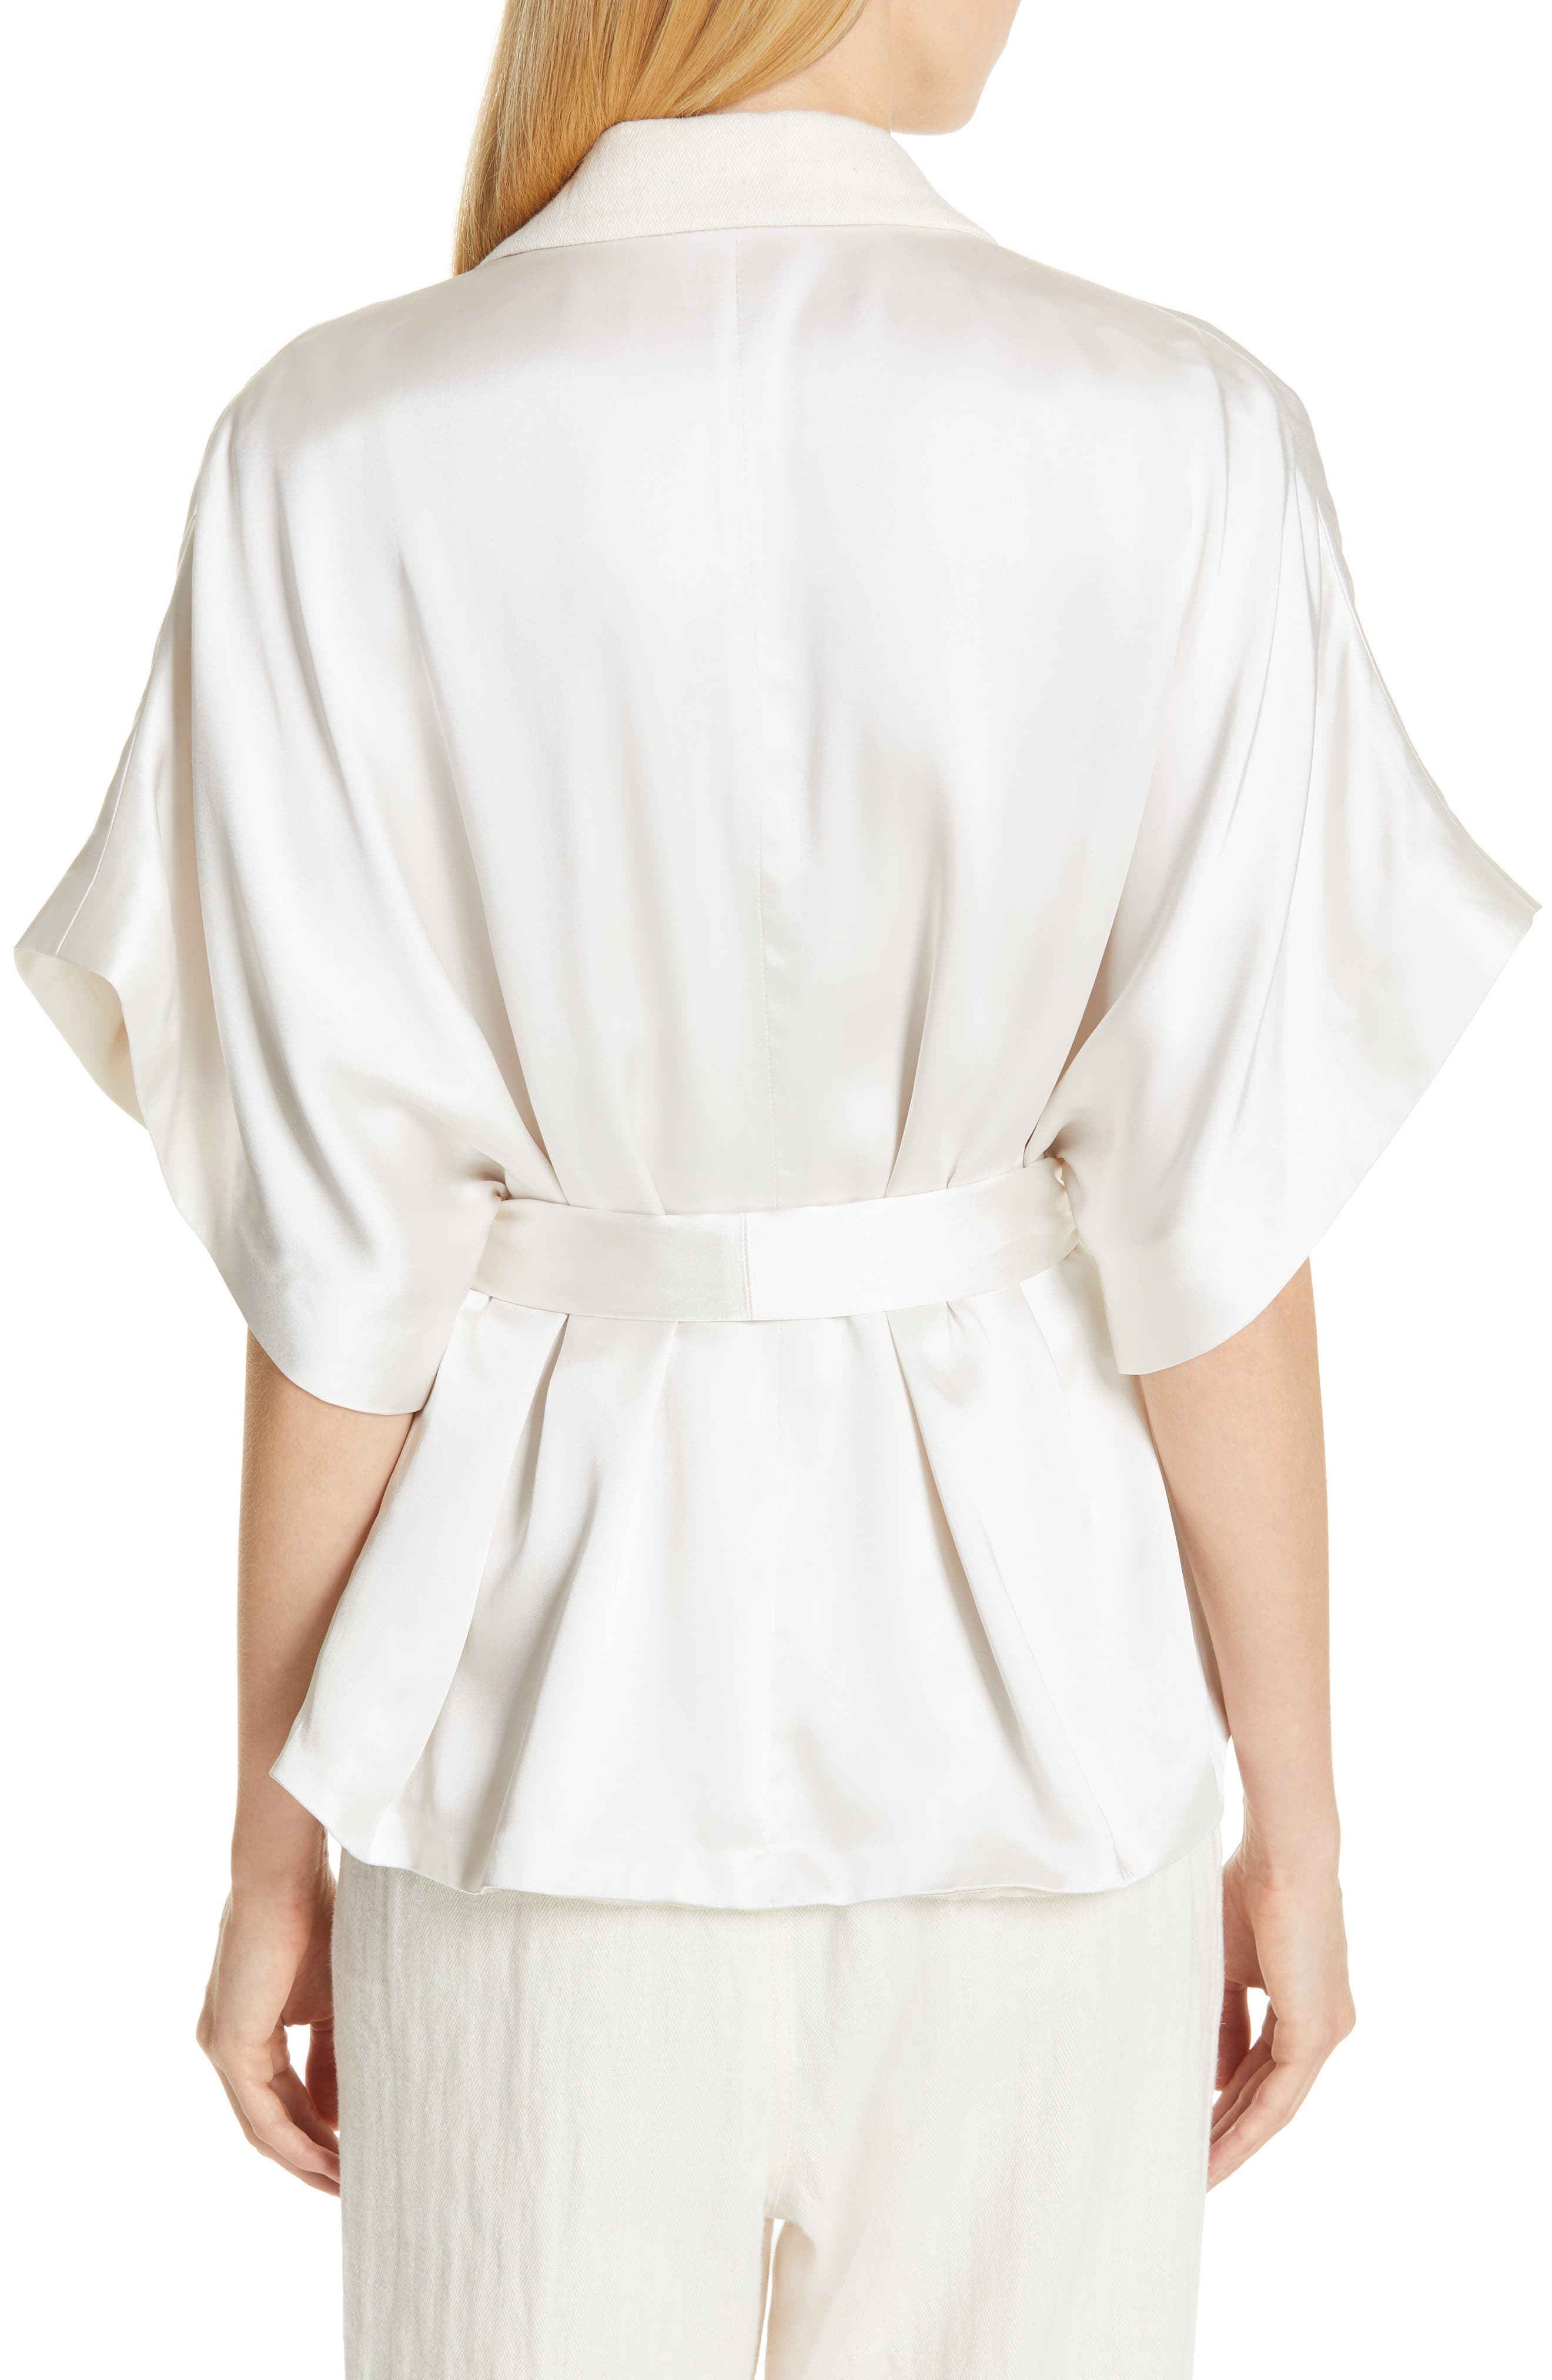 BRUNELLO CUCINELLI,                             Embellished Lapel Satin Kimono Jacket,                             Alternate thumbnail 2, color,                             BONE